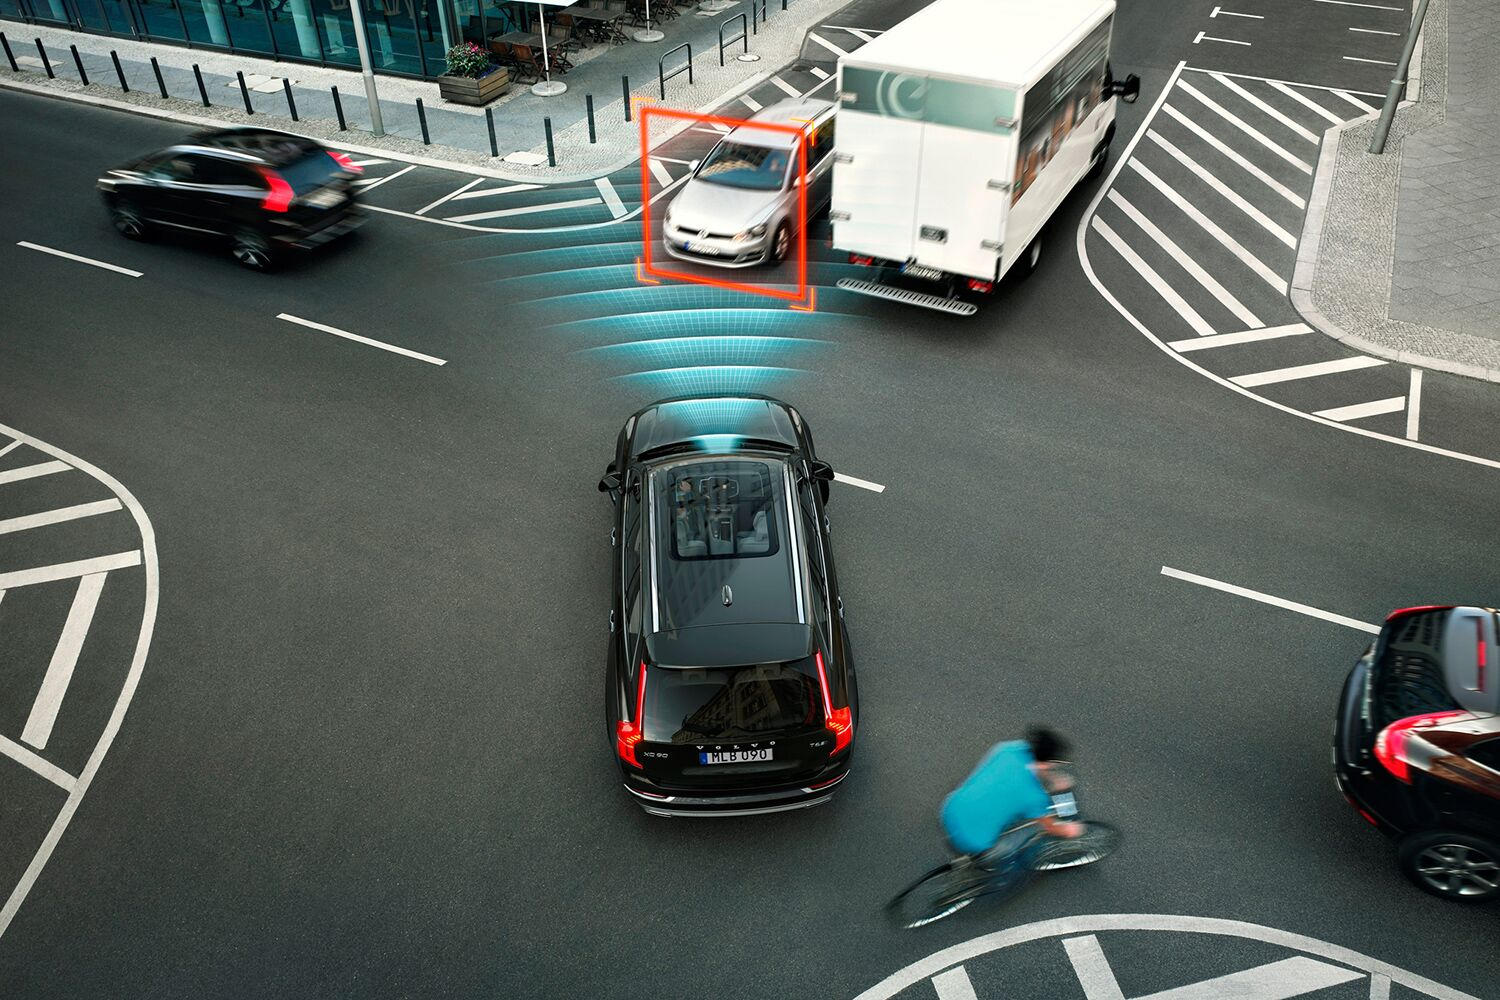 What Are The Application Of Artificial Intelligence In Transportation?